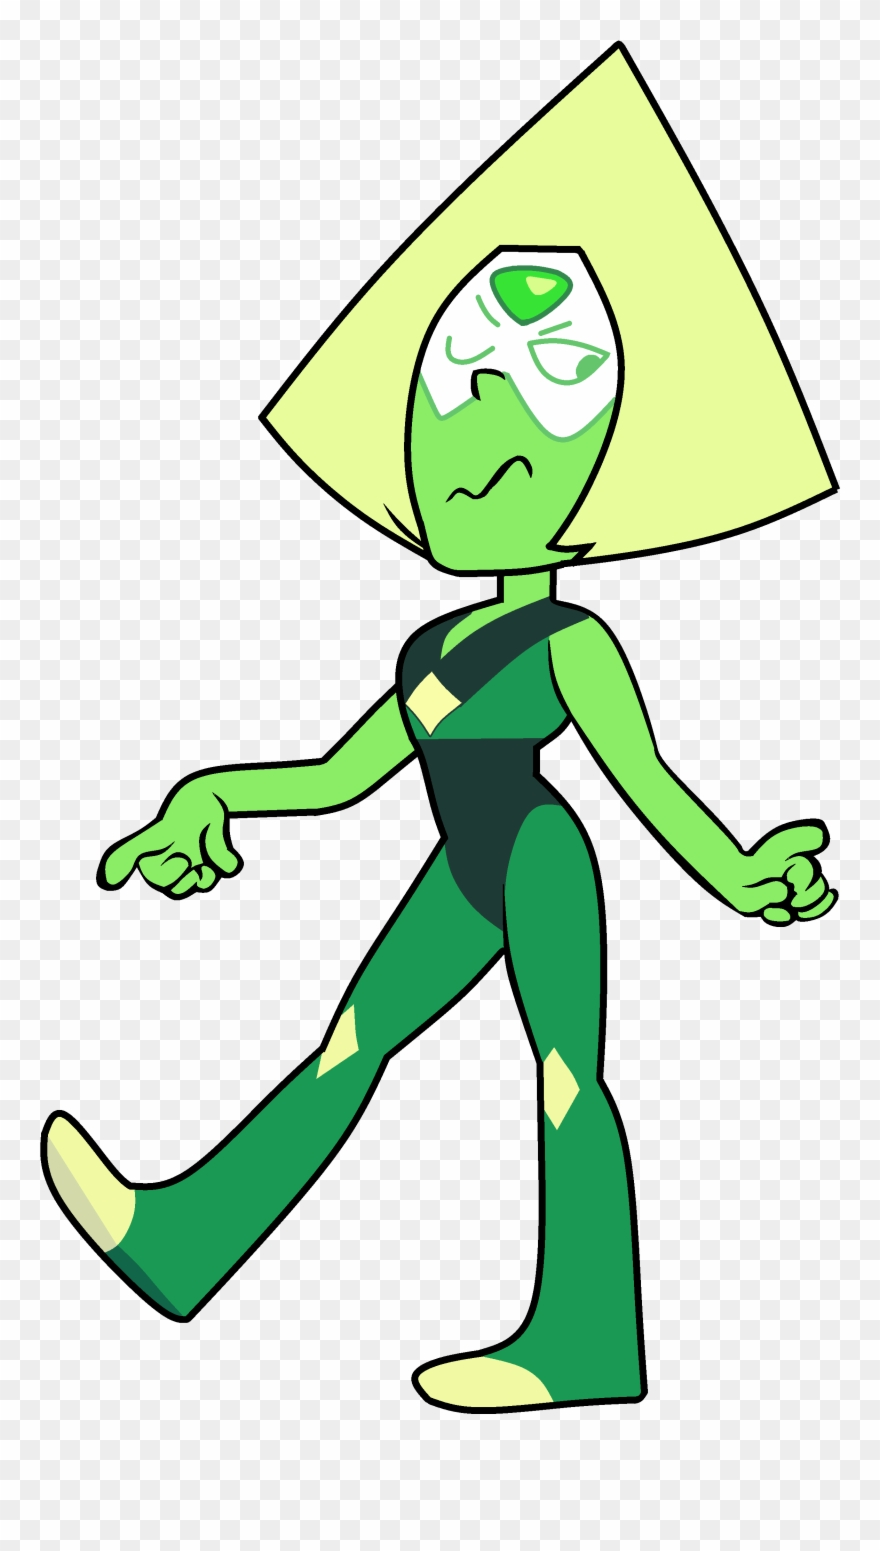 Looking back clipart picture transparent library Image Sassy Looking Back - Steven Universe Peridot Clipart (#694823 ... picture transparent library